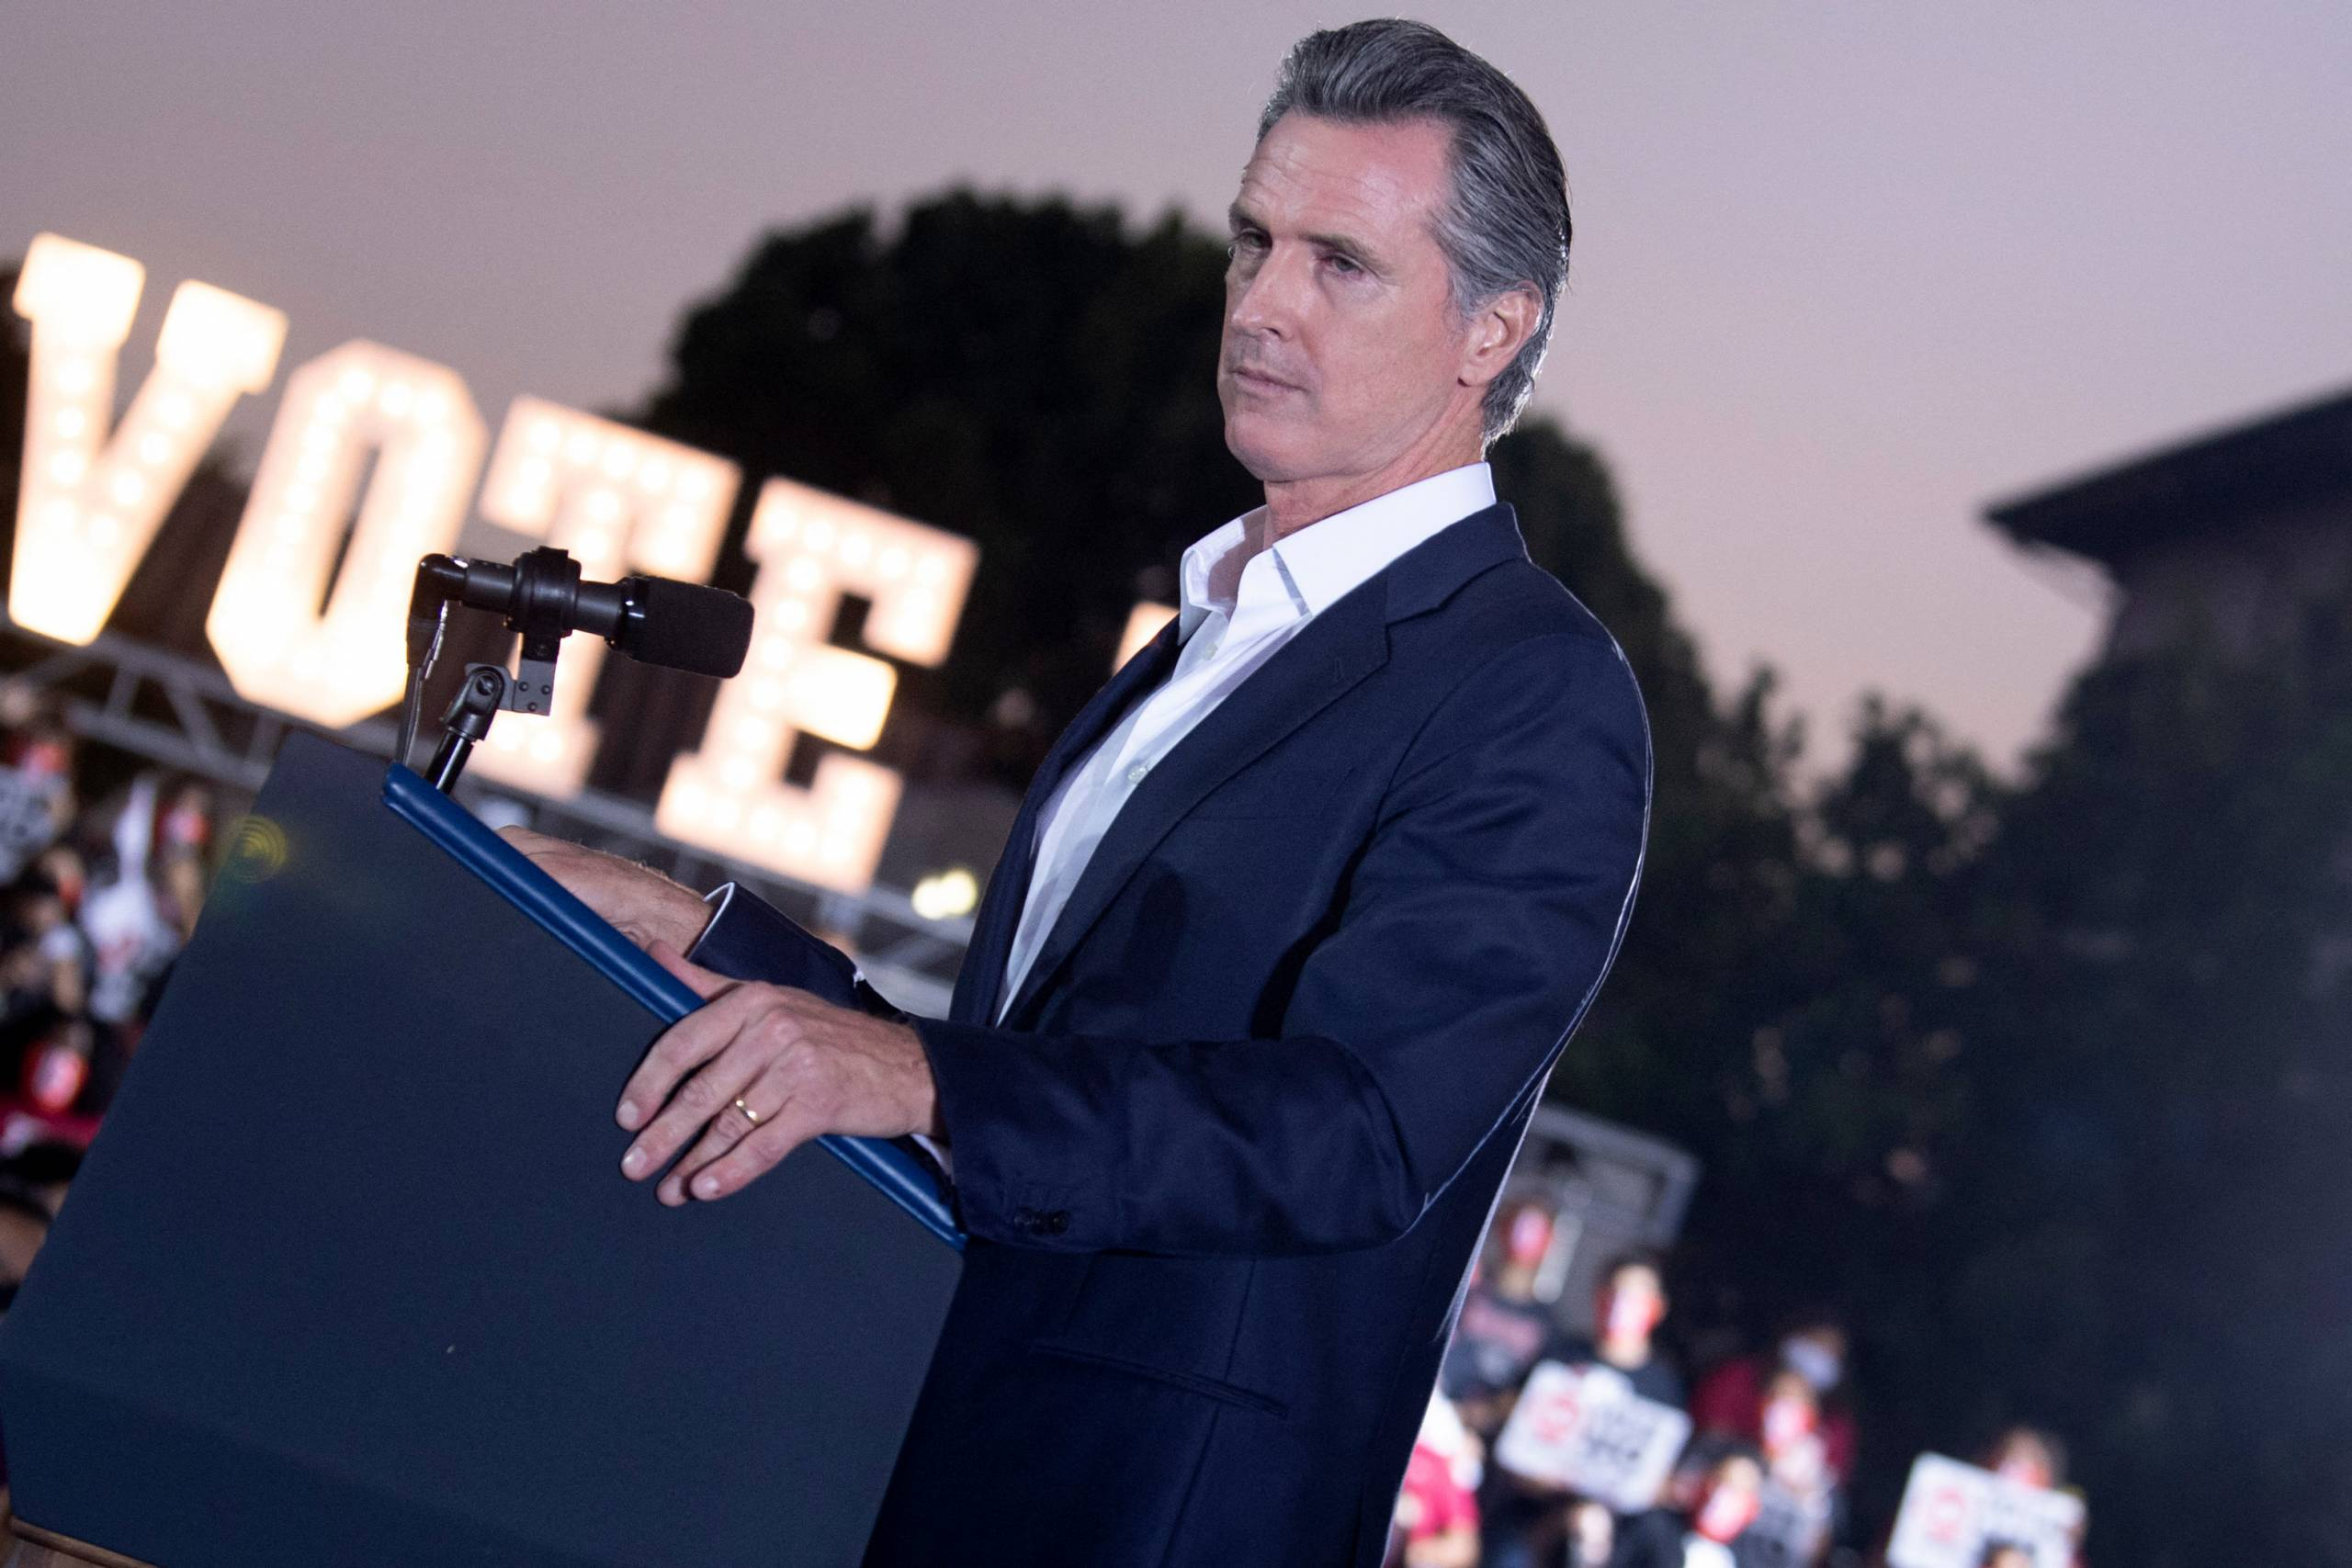 """Gov. Gavin Newsom stands at a podium with a stern look, a large lighted sign beyond him that says, """"Vote."""""""